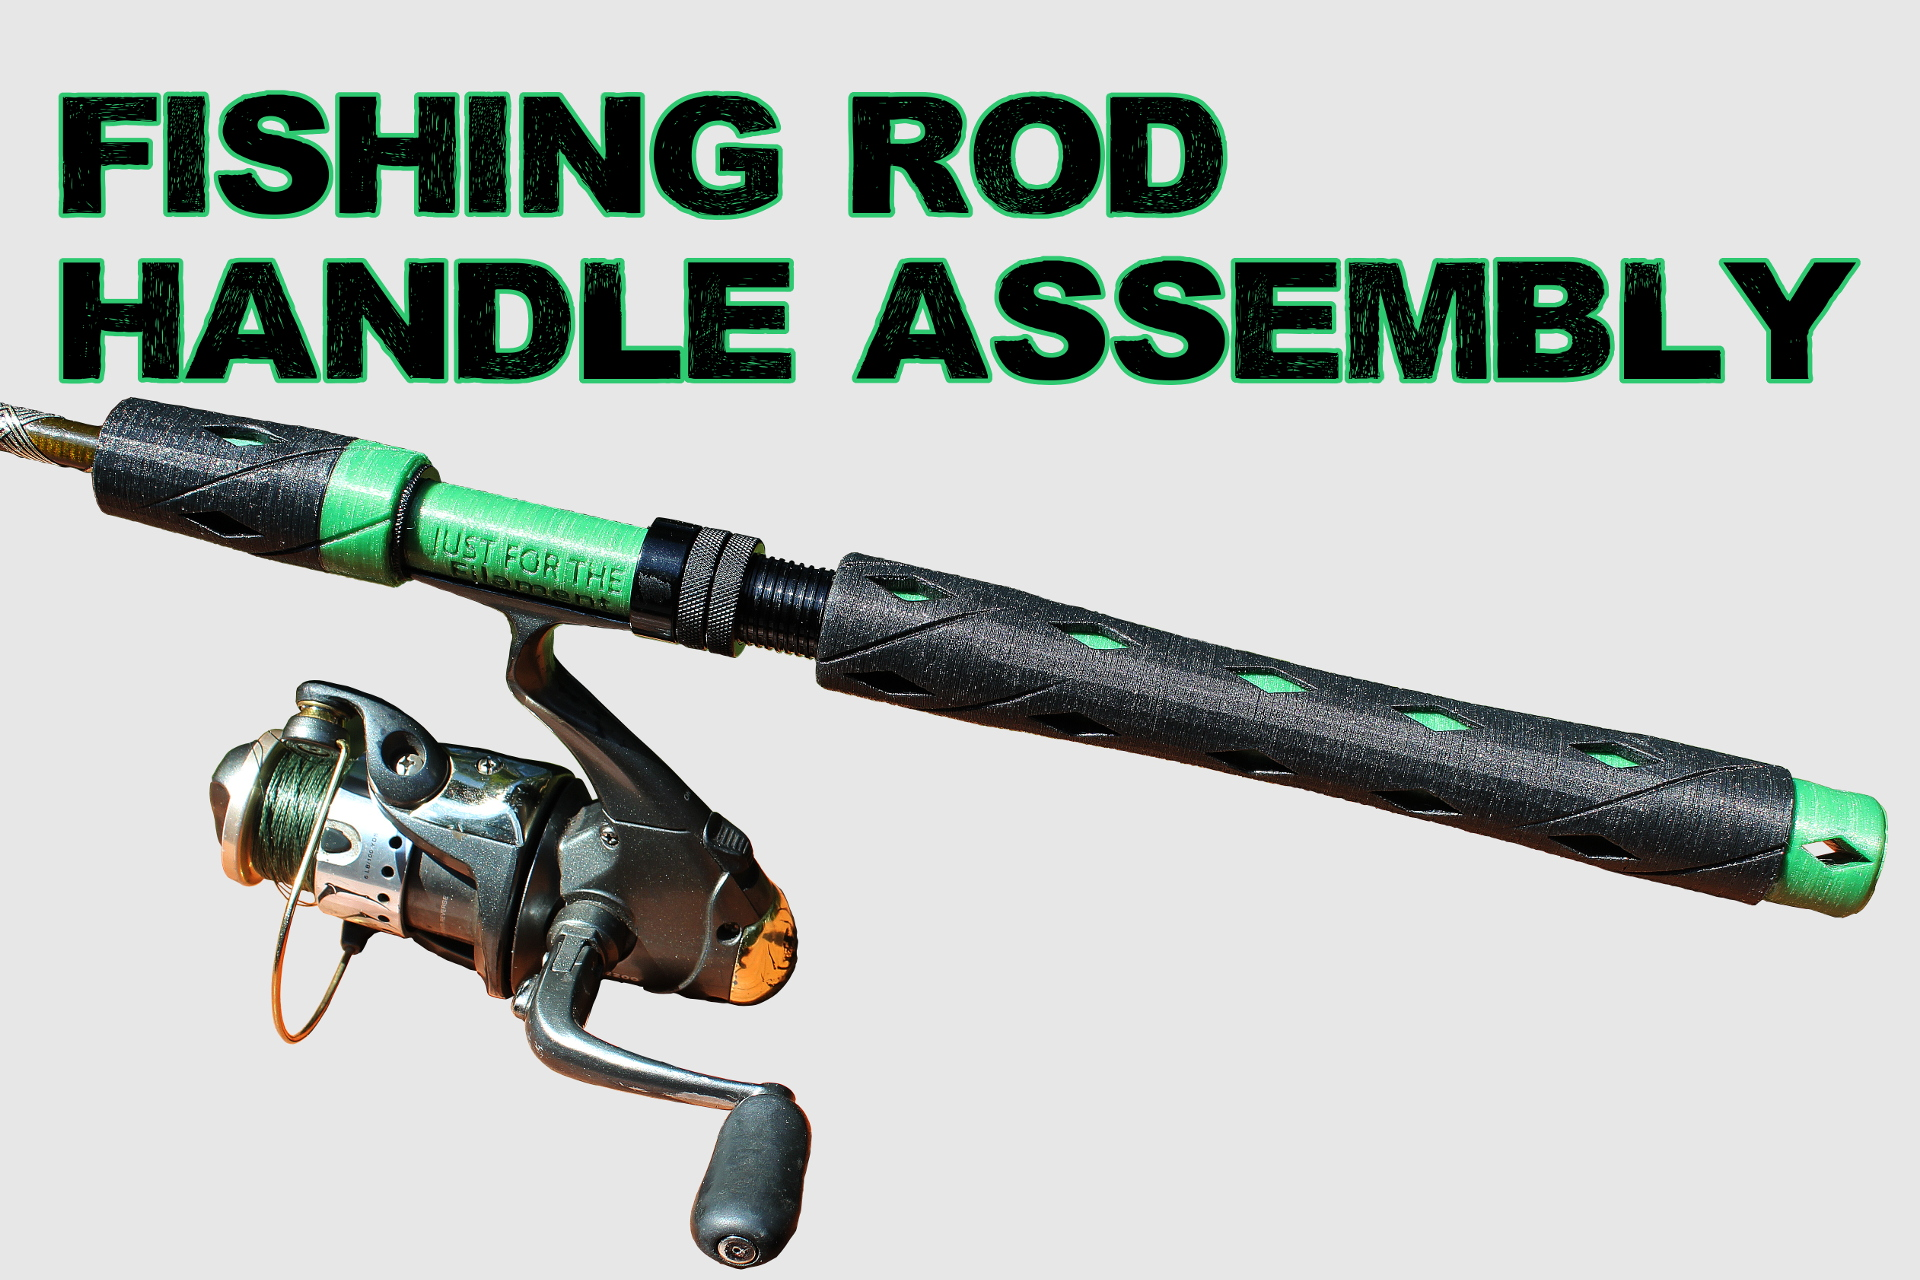 hight resolution of spinning rod fishing rod handle assembly by revamped outdoors oct 21 2018 view original